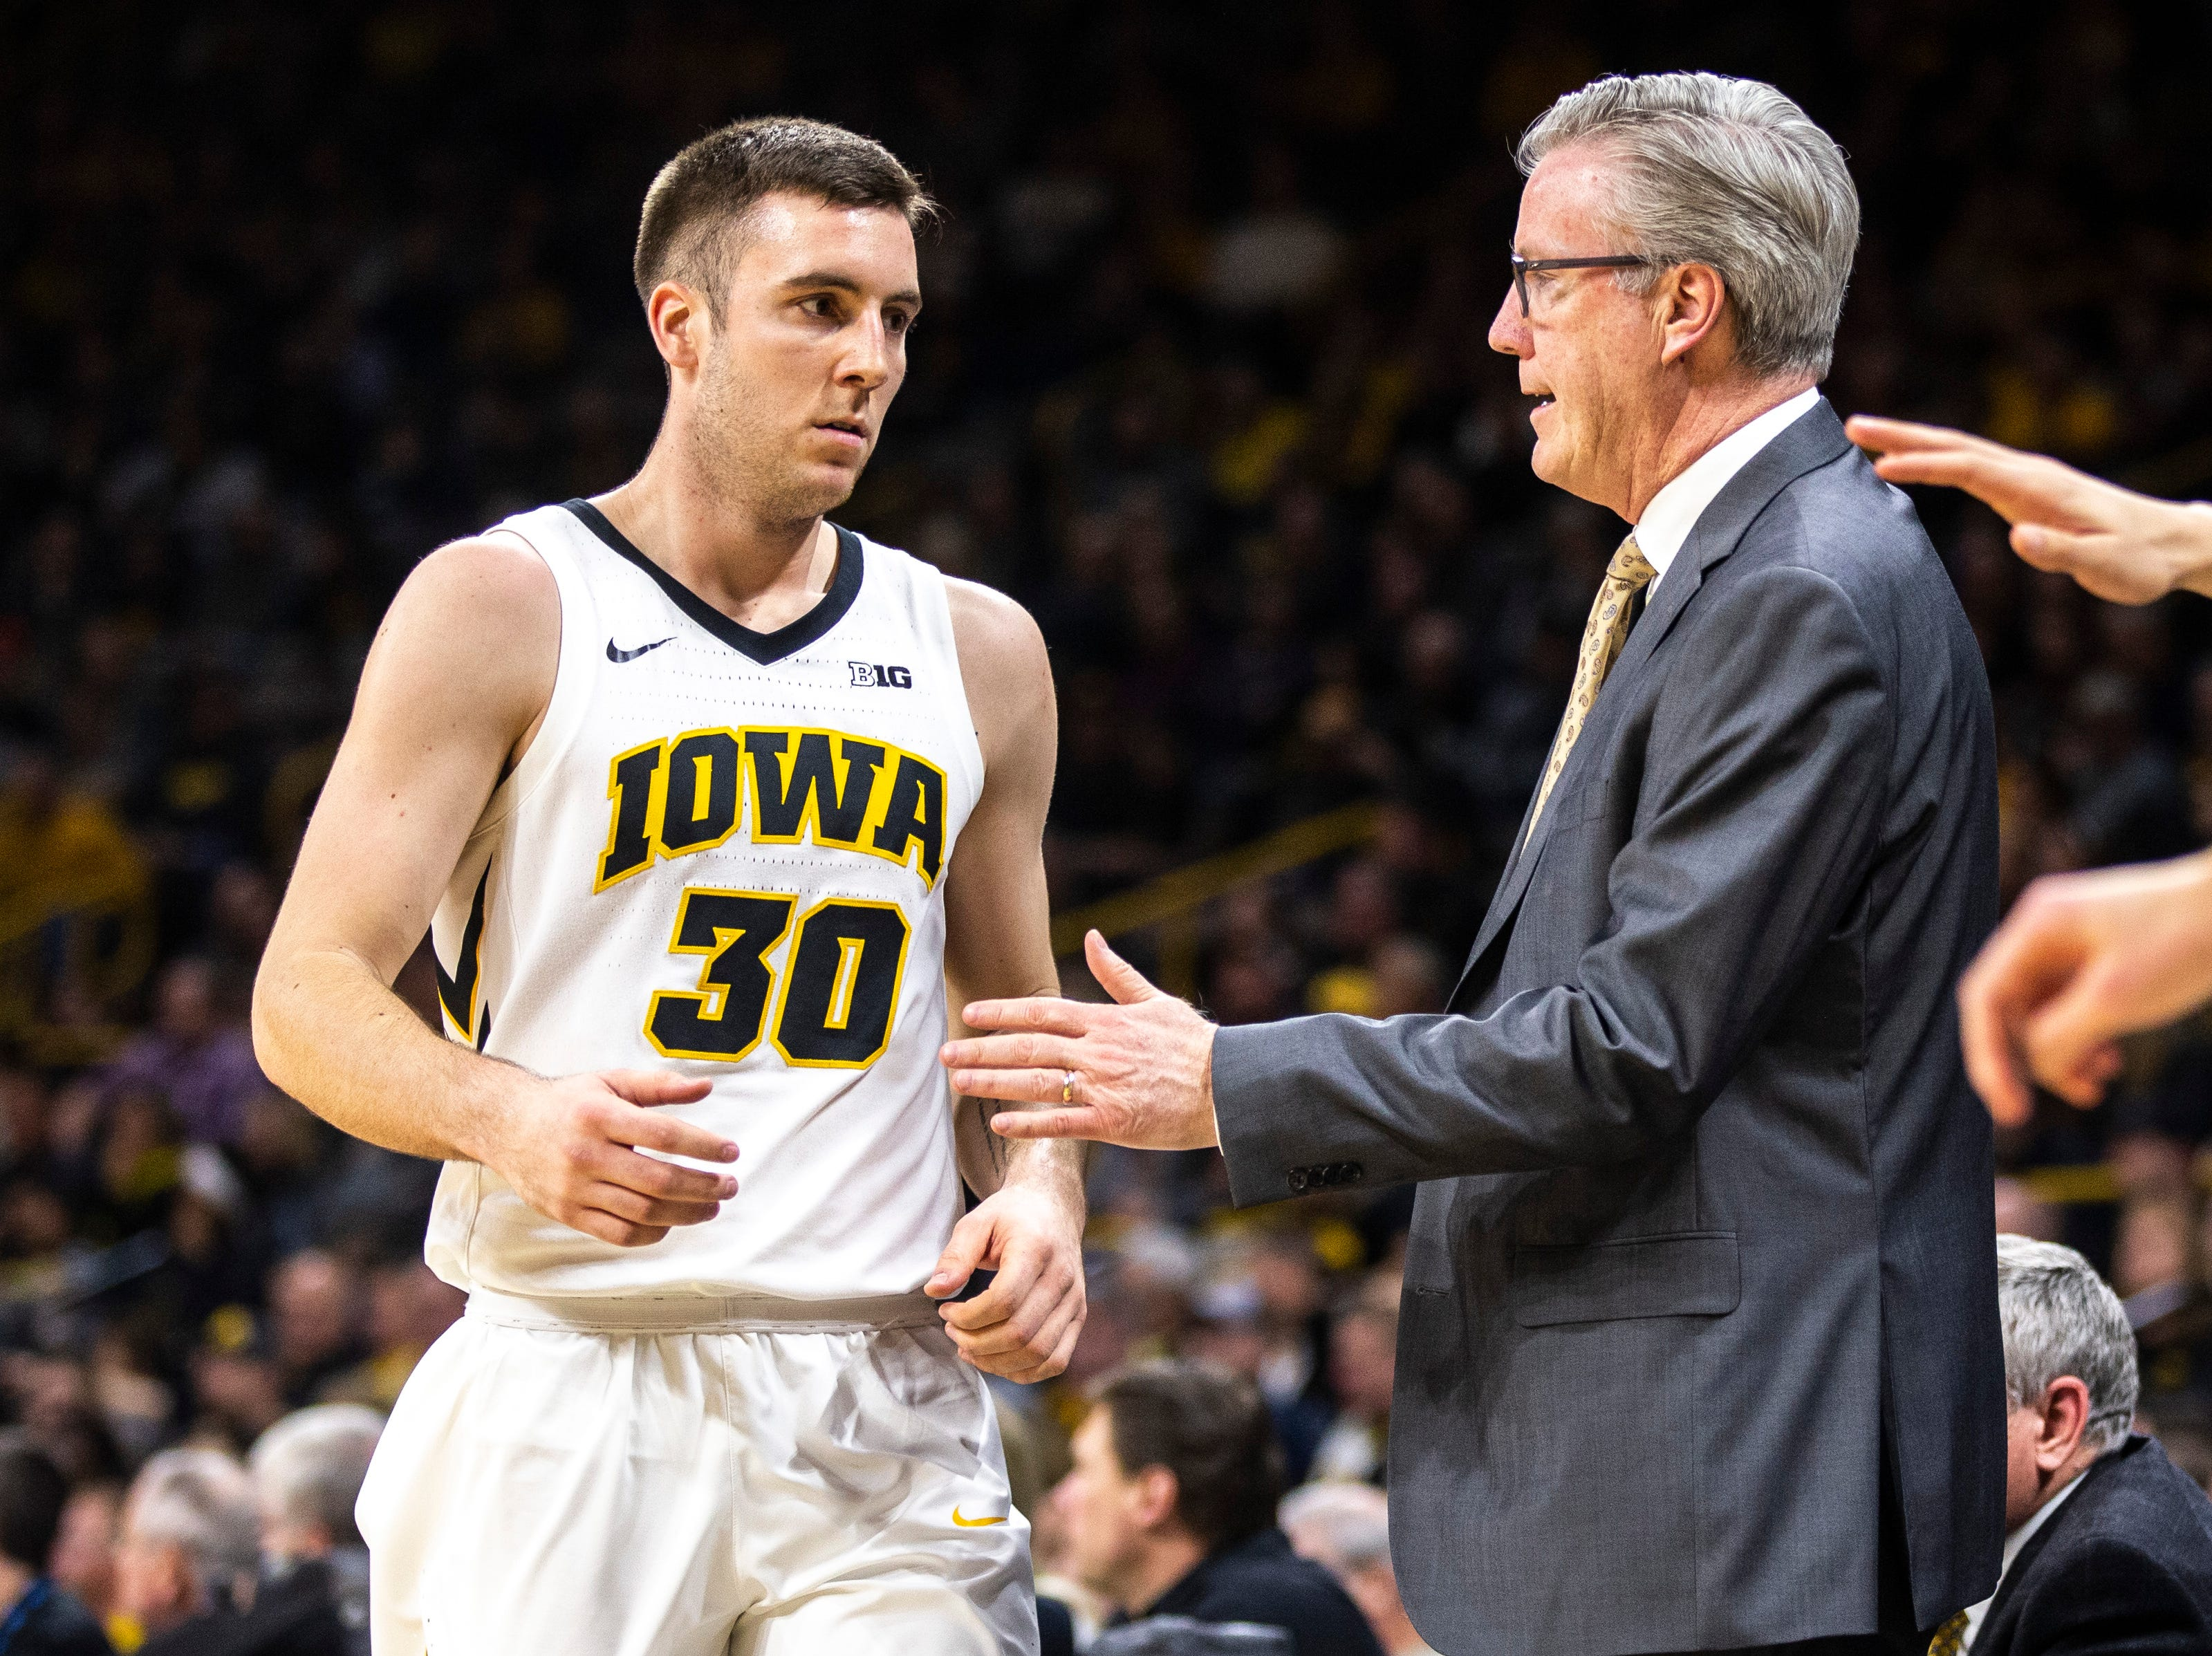 Iowa guard Connor McCaffery (30) heads to the bench past Iowa men's basketball head coach Fran McCaffery during a NCAA Big Ten Conference men's basketball game on Tuesday, Feb. 19, 2019 at Carver-Hawkeye Arena in Iowa City, Iowa.